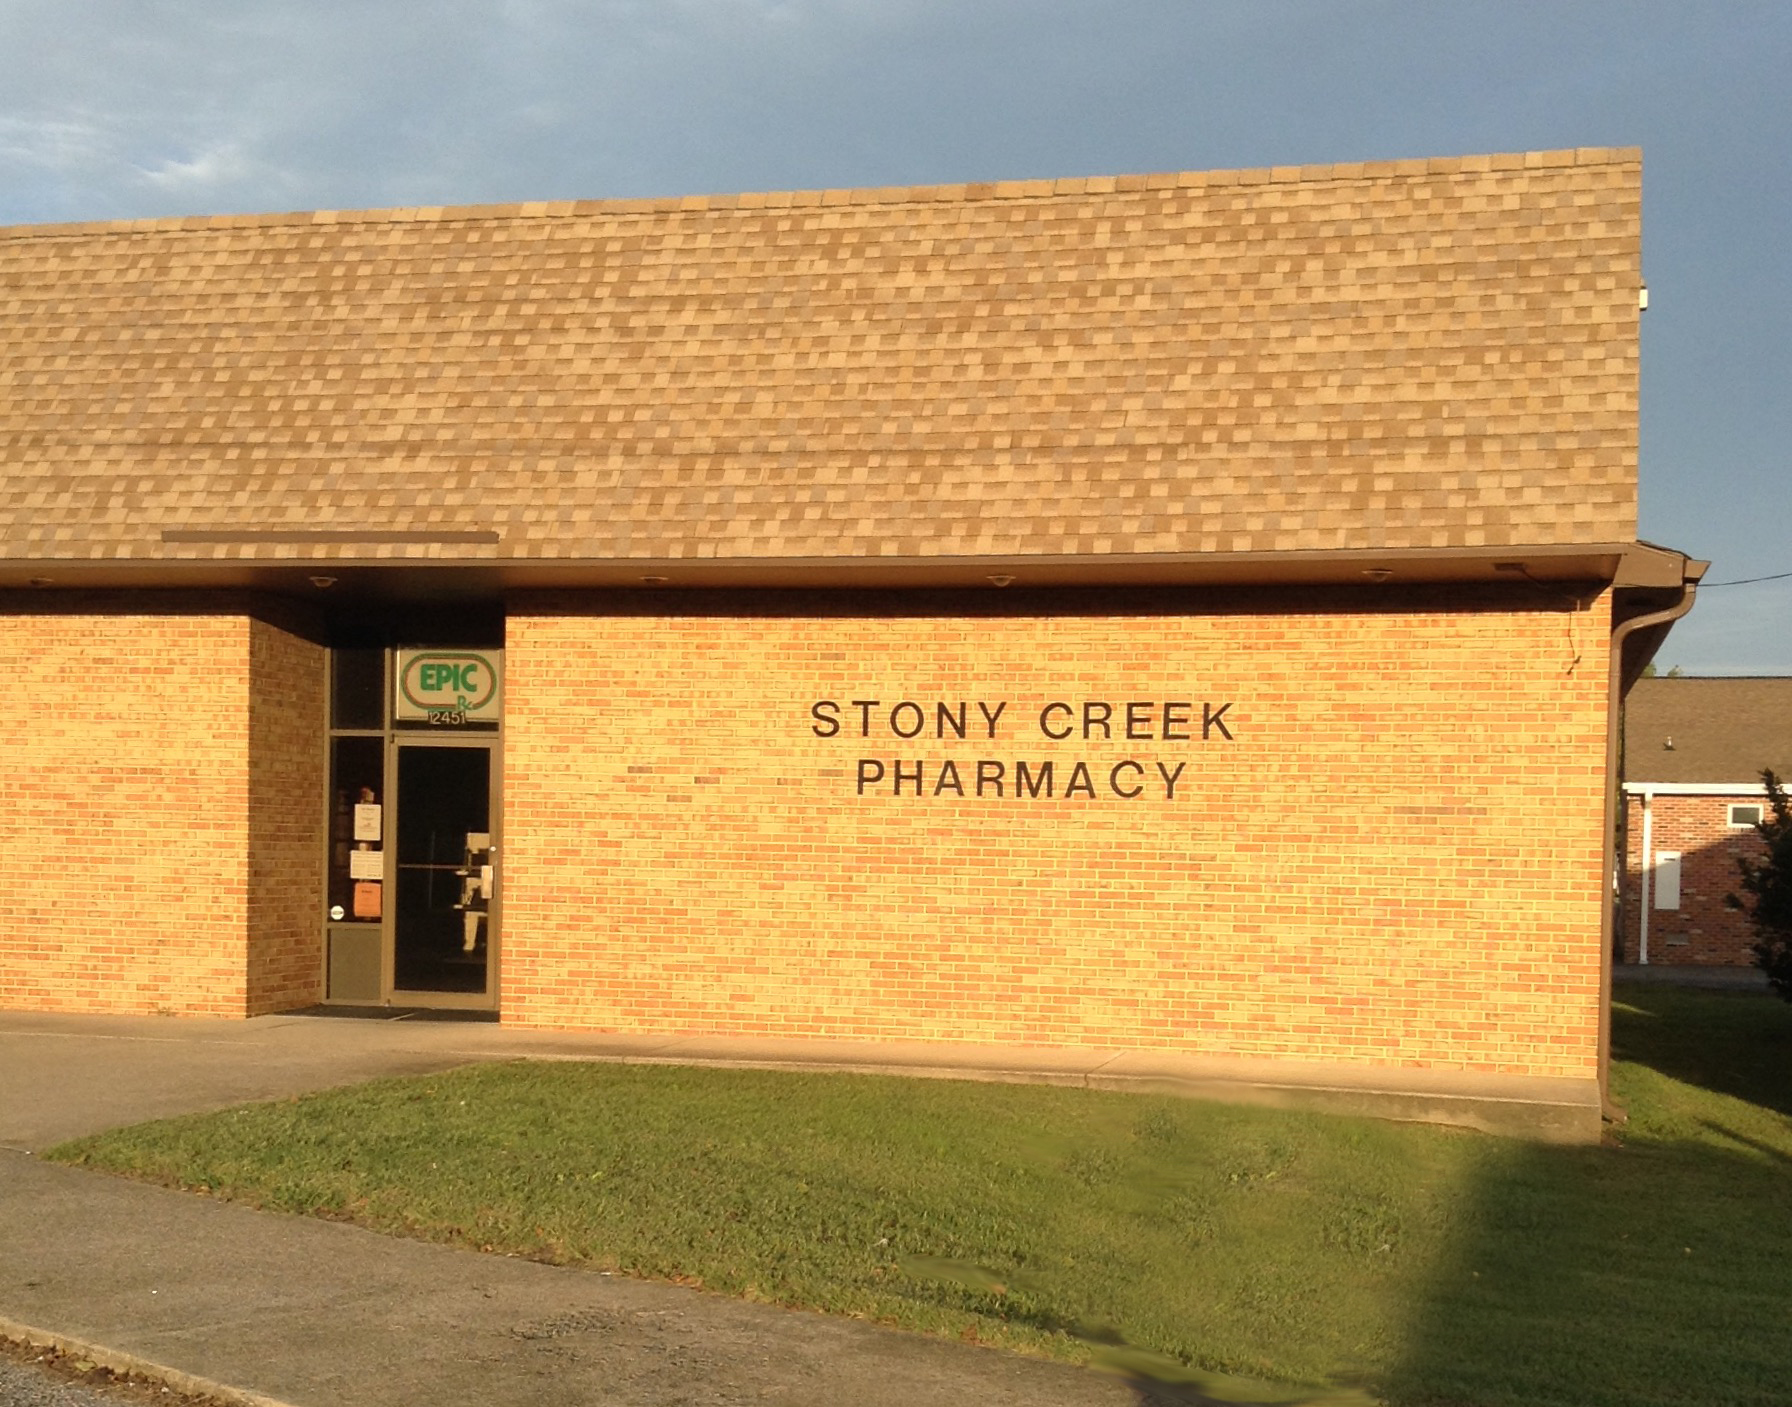 Stony Creek Pharmacy